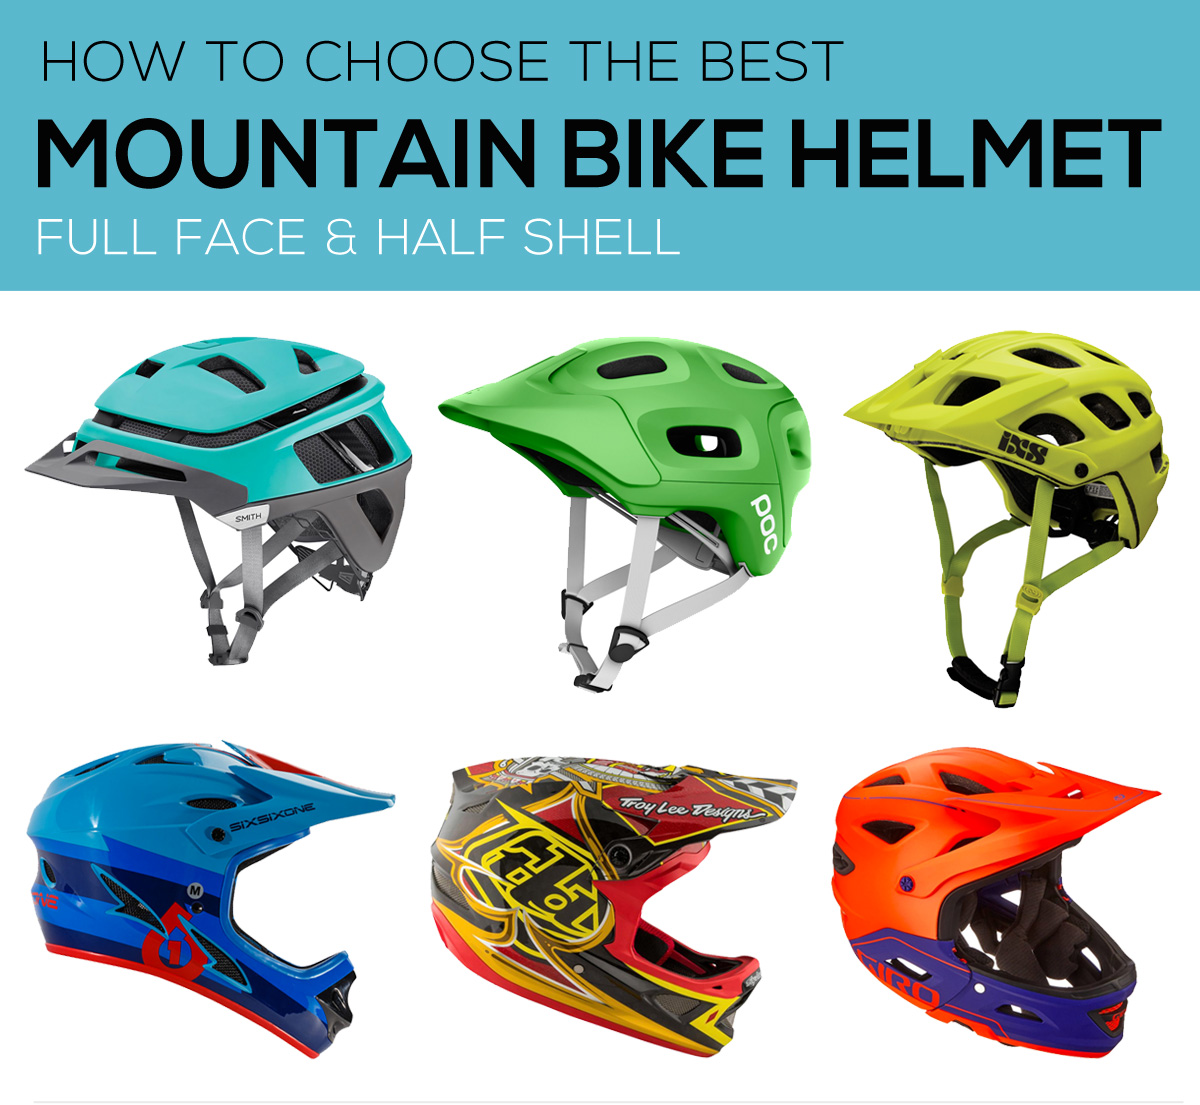 How To Choose Your Mountain Bike Helmet?